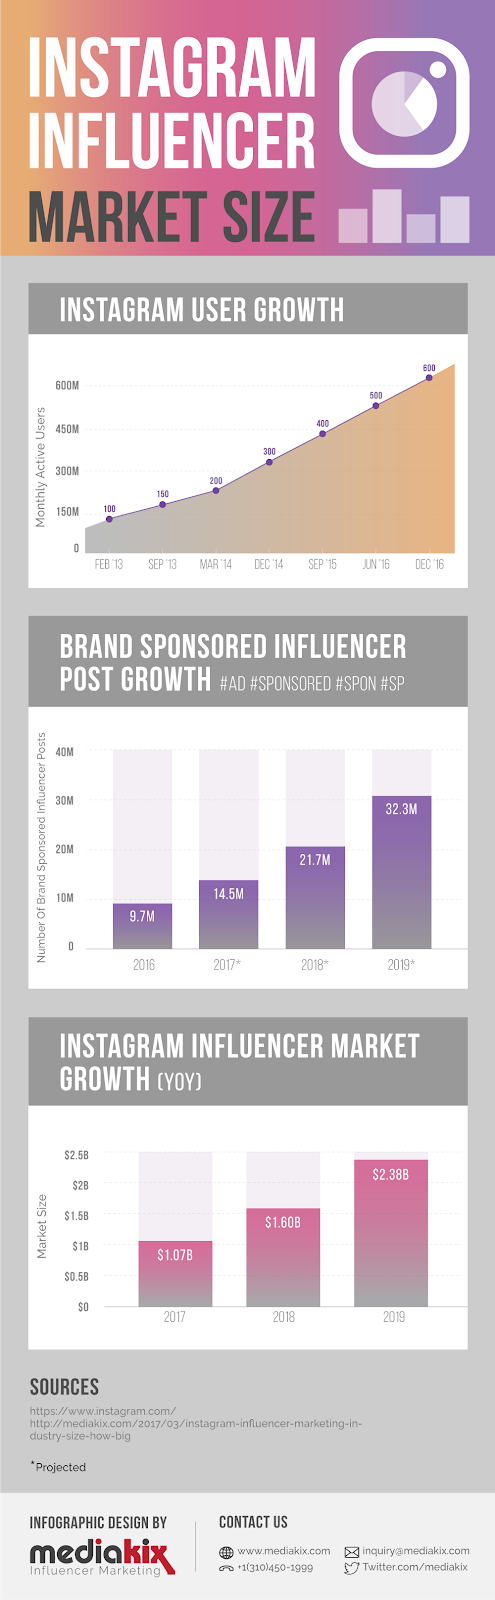 Instagram influencer infographic